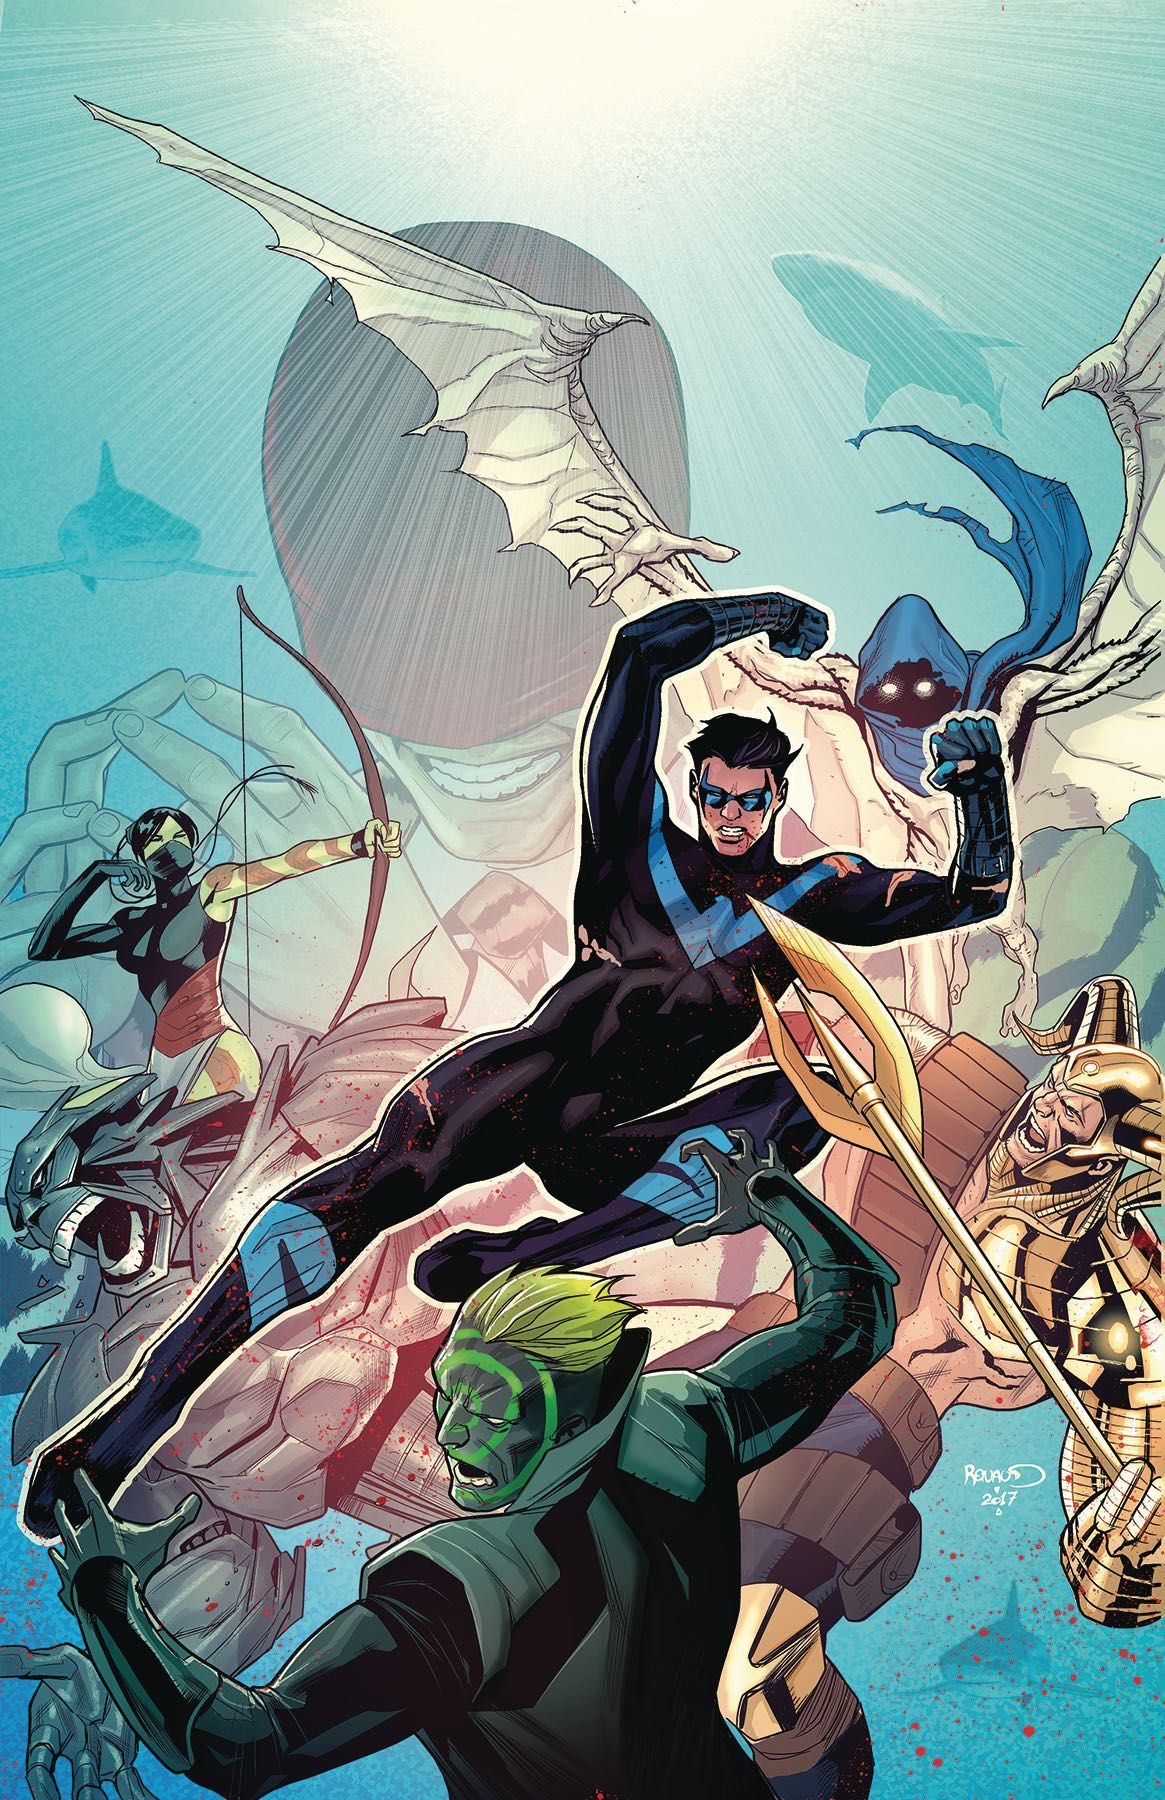 Nightwing #24 (Cover A Paul Renaud)